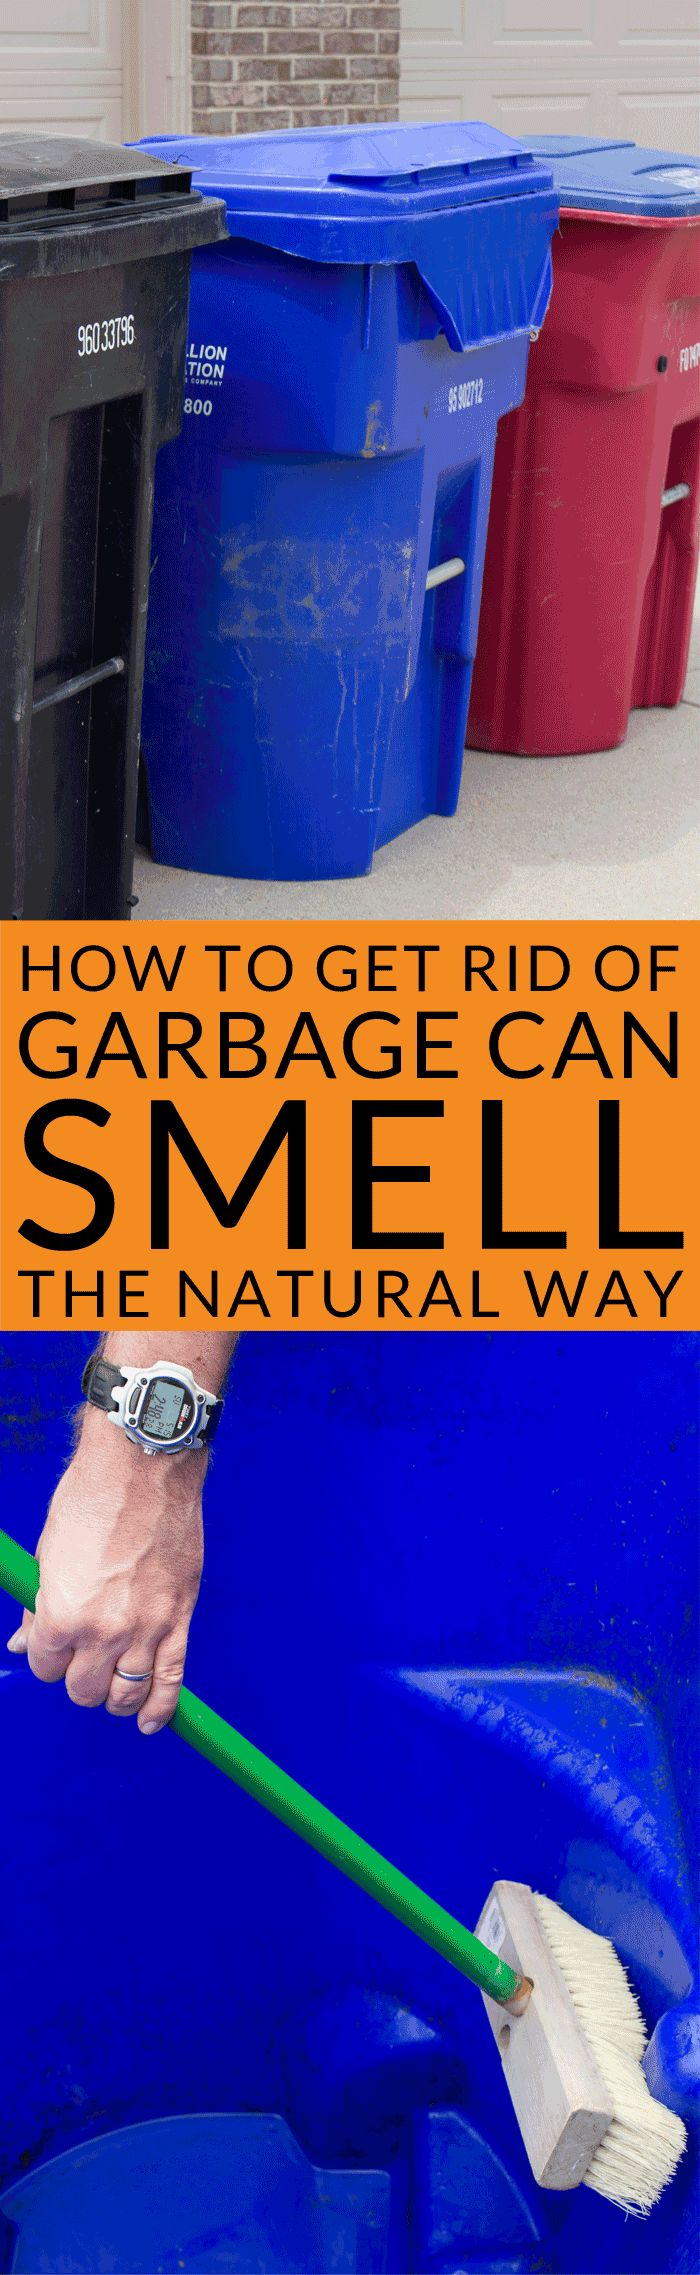 Got a smelly stinky garbage can? Naturally clean your outdoor garbage cans with vinegar to deodorize and eliminate odors. Learn how to get rid of garbage can smell naturally with this easy green cleaning tip. Cleaning with vinegar is non-toxic and environmentally friendly for outdoor cleaning. Sponsored.